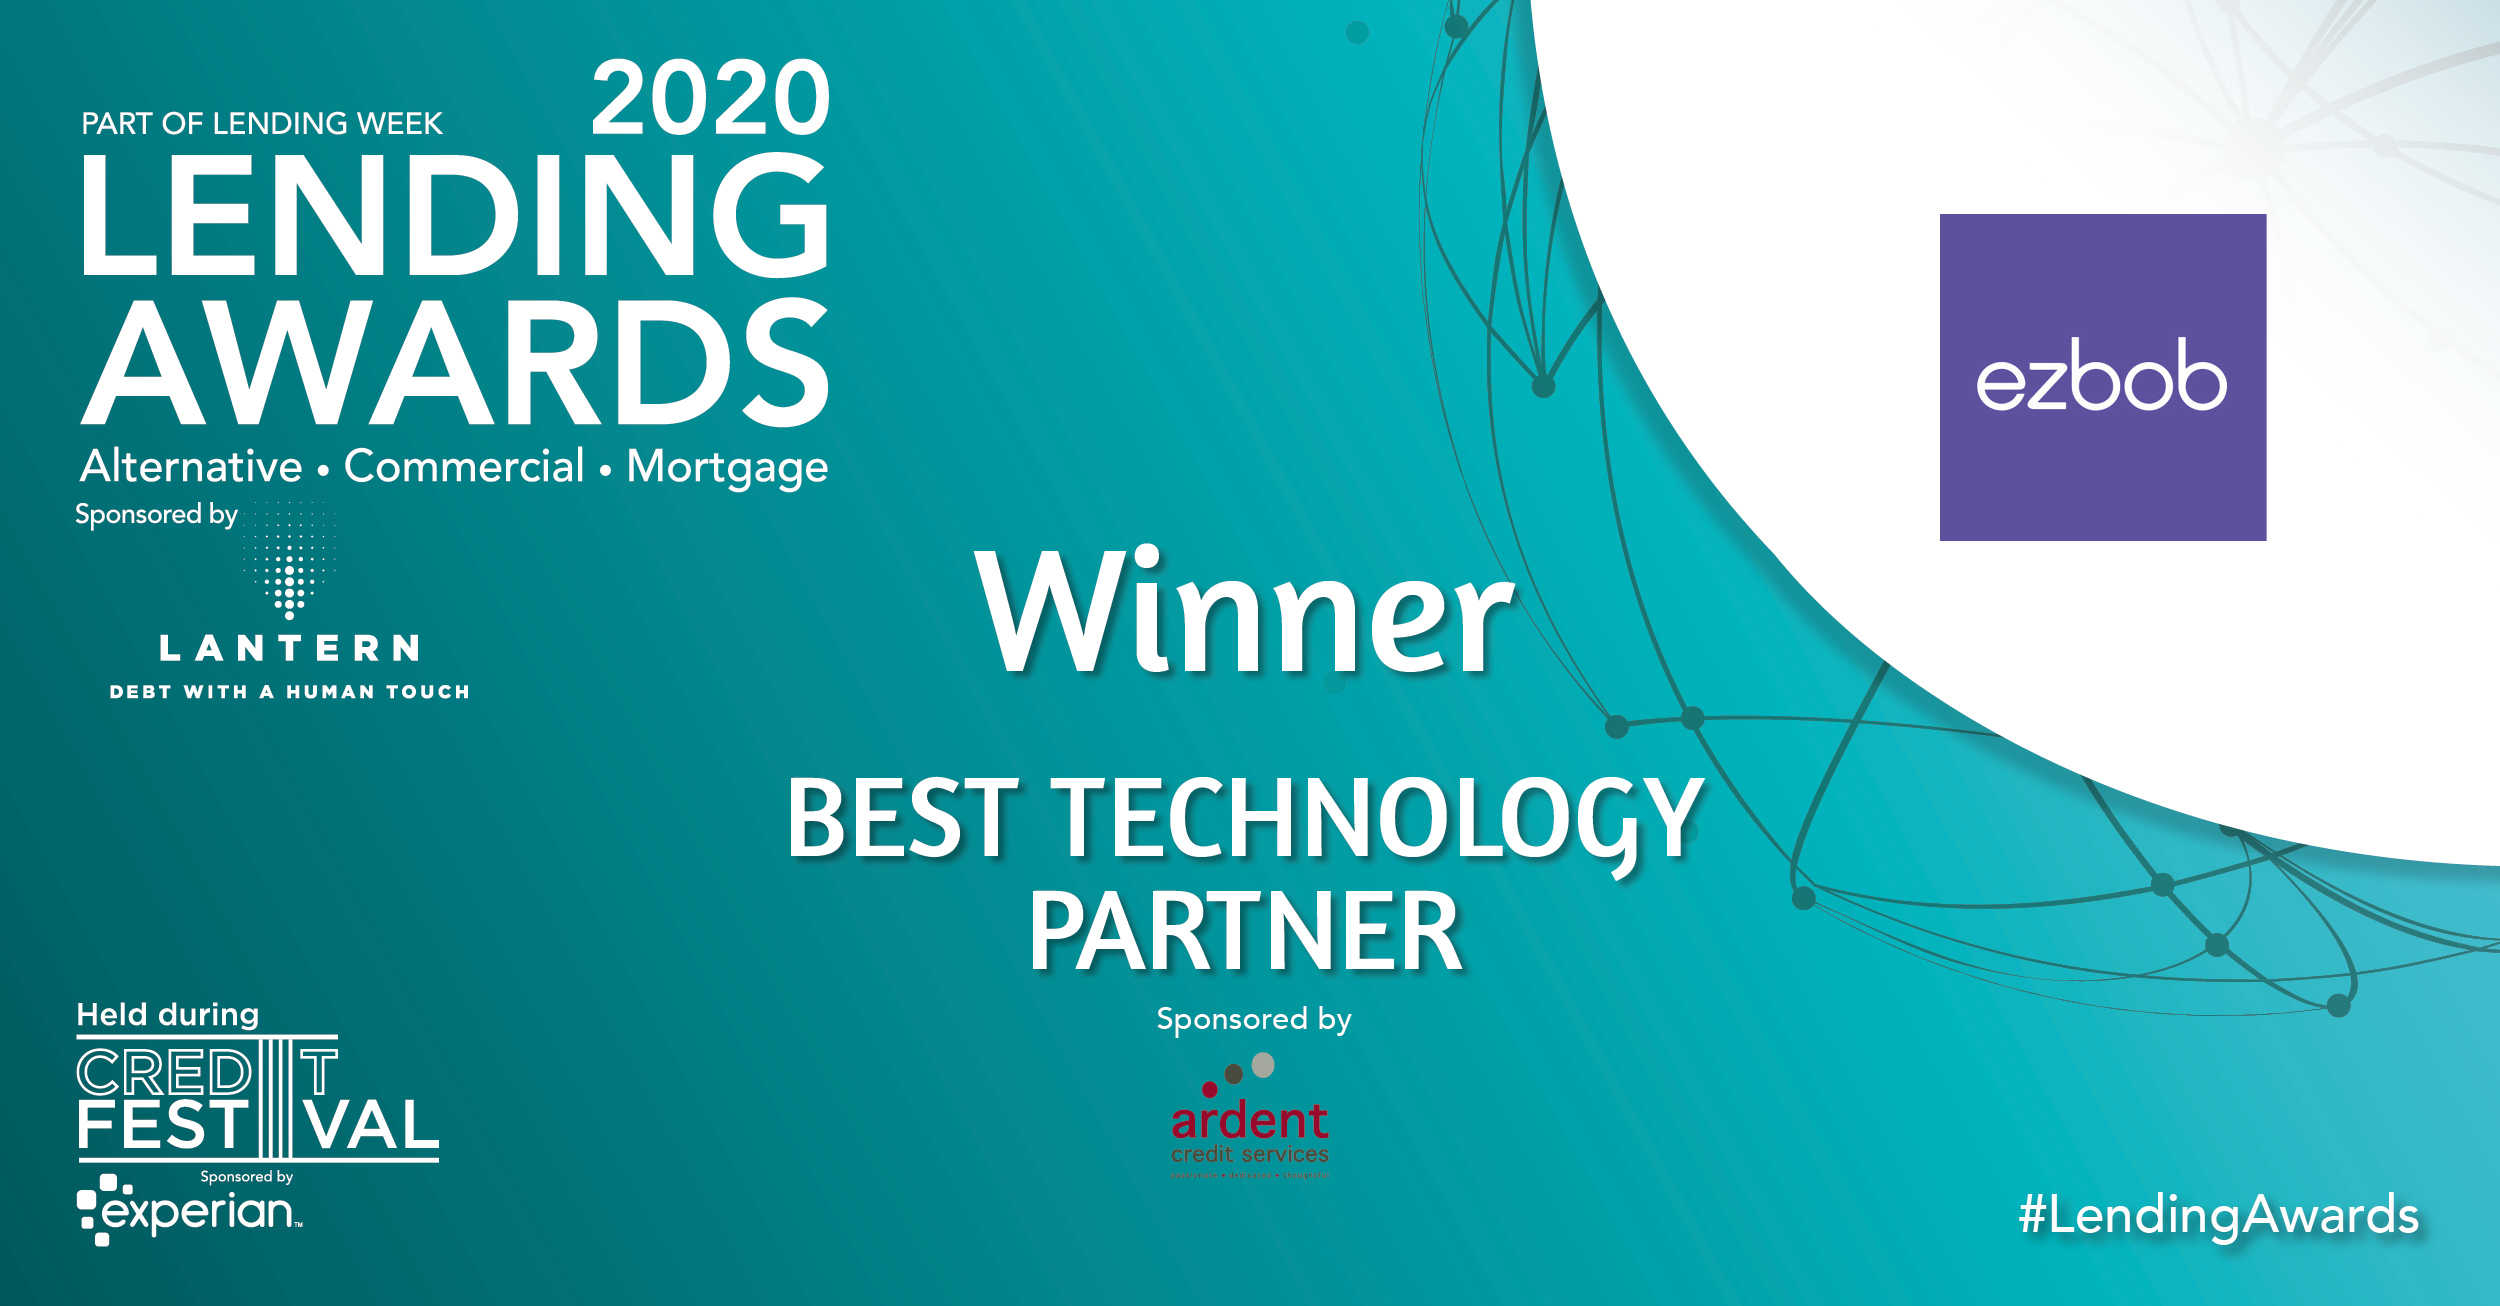 Ezbob_Best Technology Partner-social__